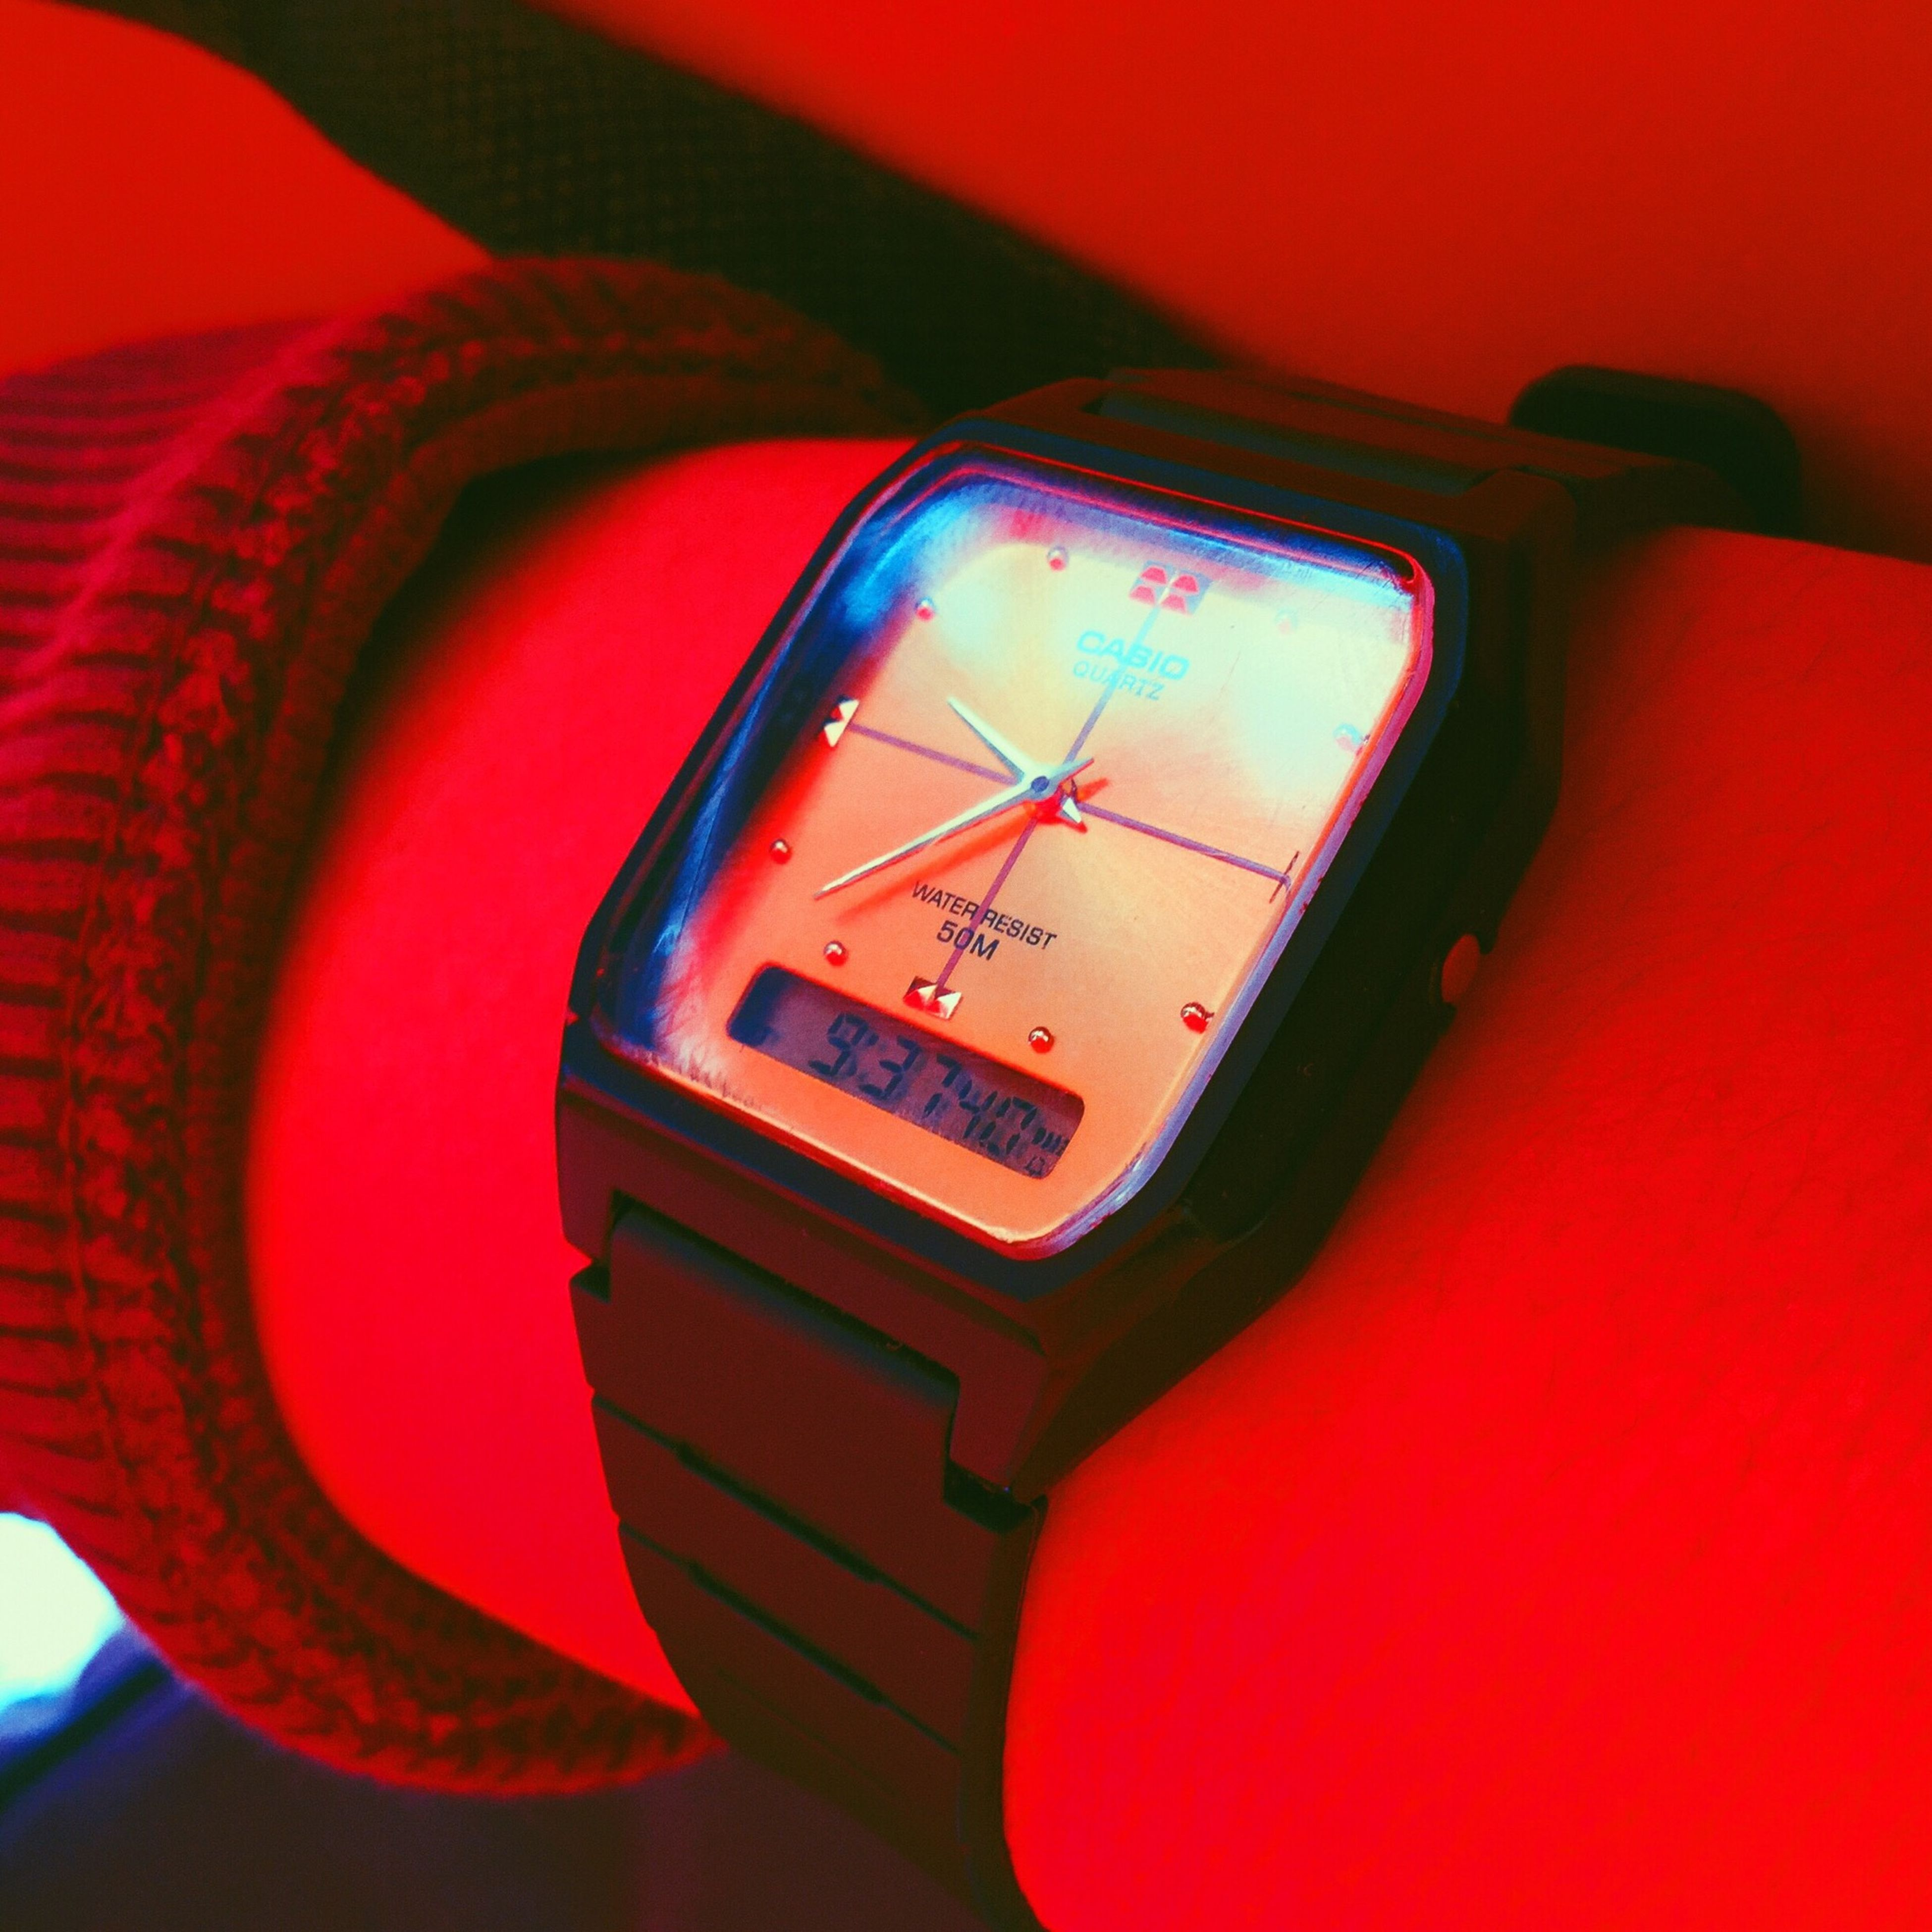 indoors, red, close-up, illuminated, single object, pattern, no people, absence, technology, arts culture and entertainment, focus on foreground, lighting equipment, empty, still life, design, music, selective focus, shiny, old-fashioned, seat